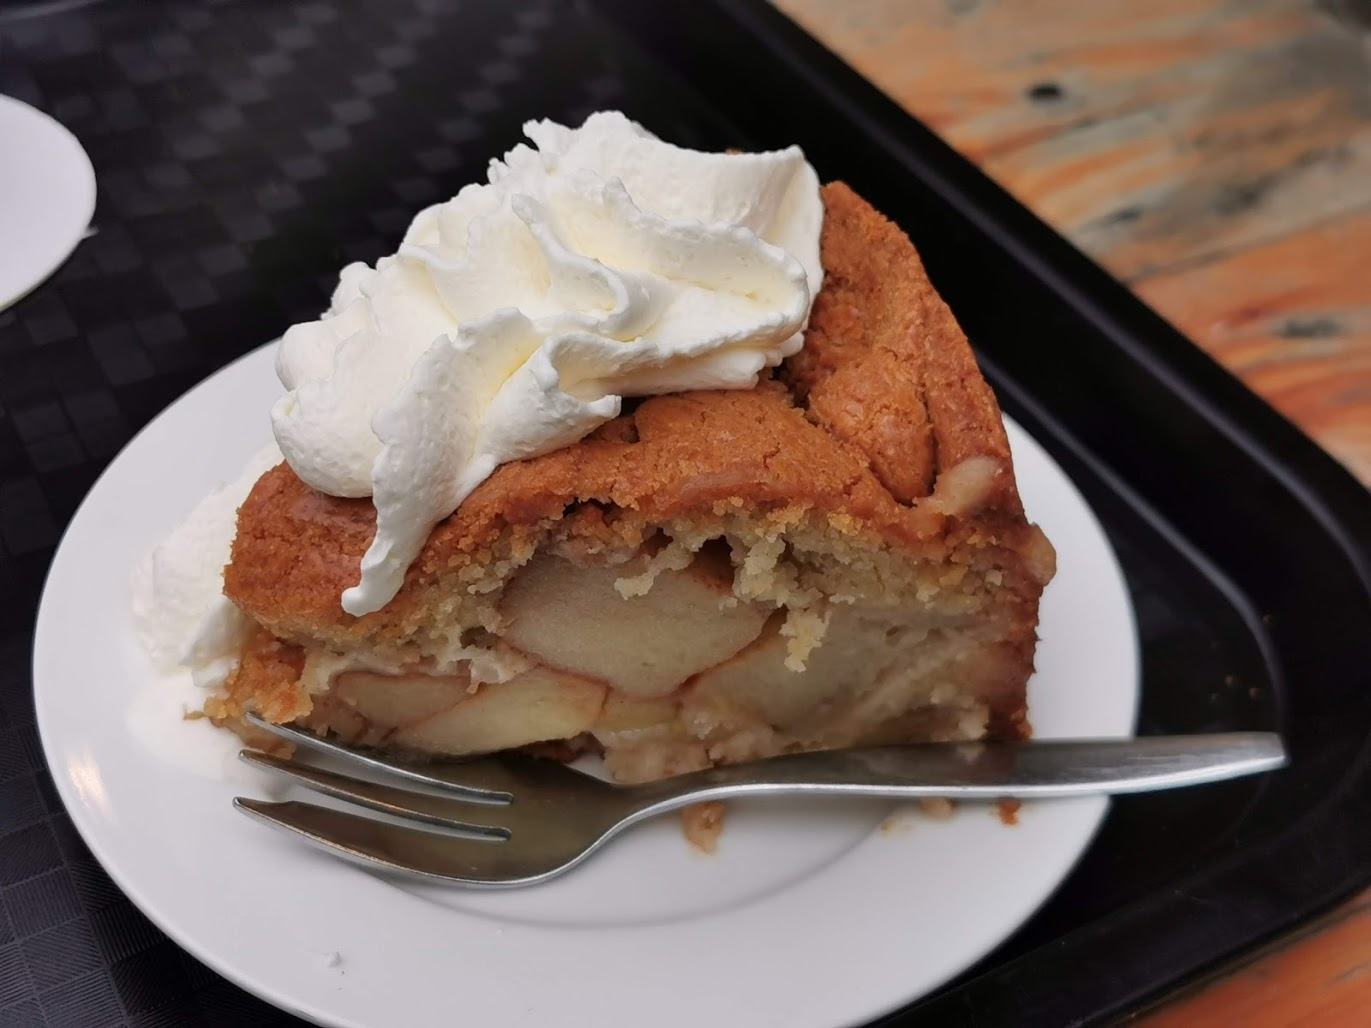 Winkel's famout apple pie